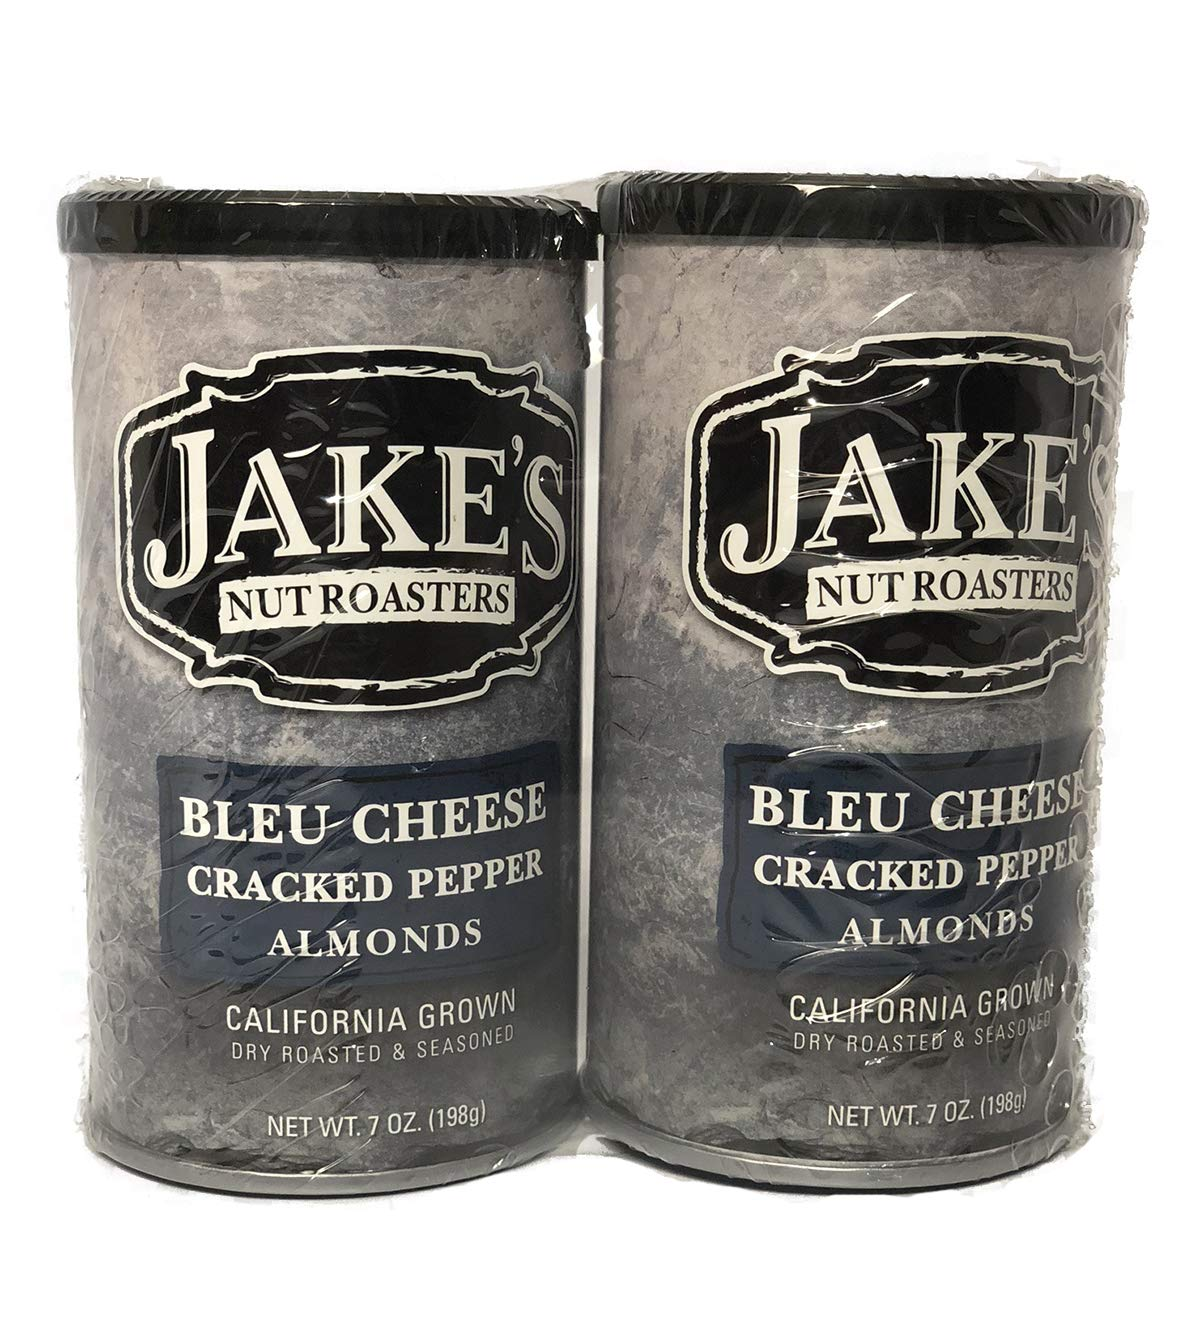 Jake's Nut Roasters Bleu Cheese Cracked Pepper Almonds (2 Pack) Whole Dry Roasted Seasoned Almonds - High-Protein Snack with a Bleu Cheese & Black Pepper Flavor